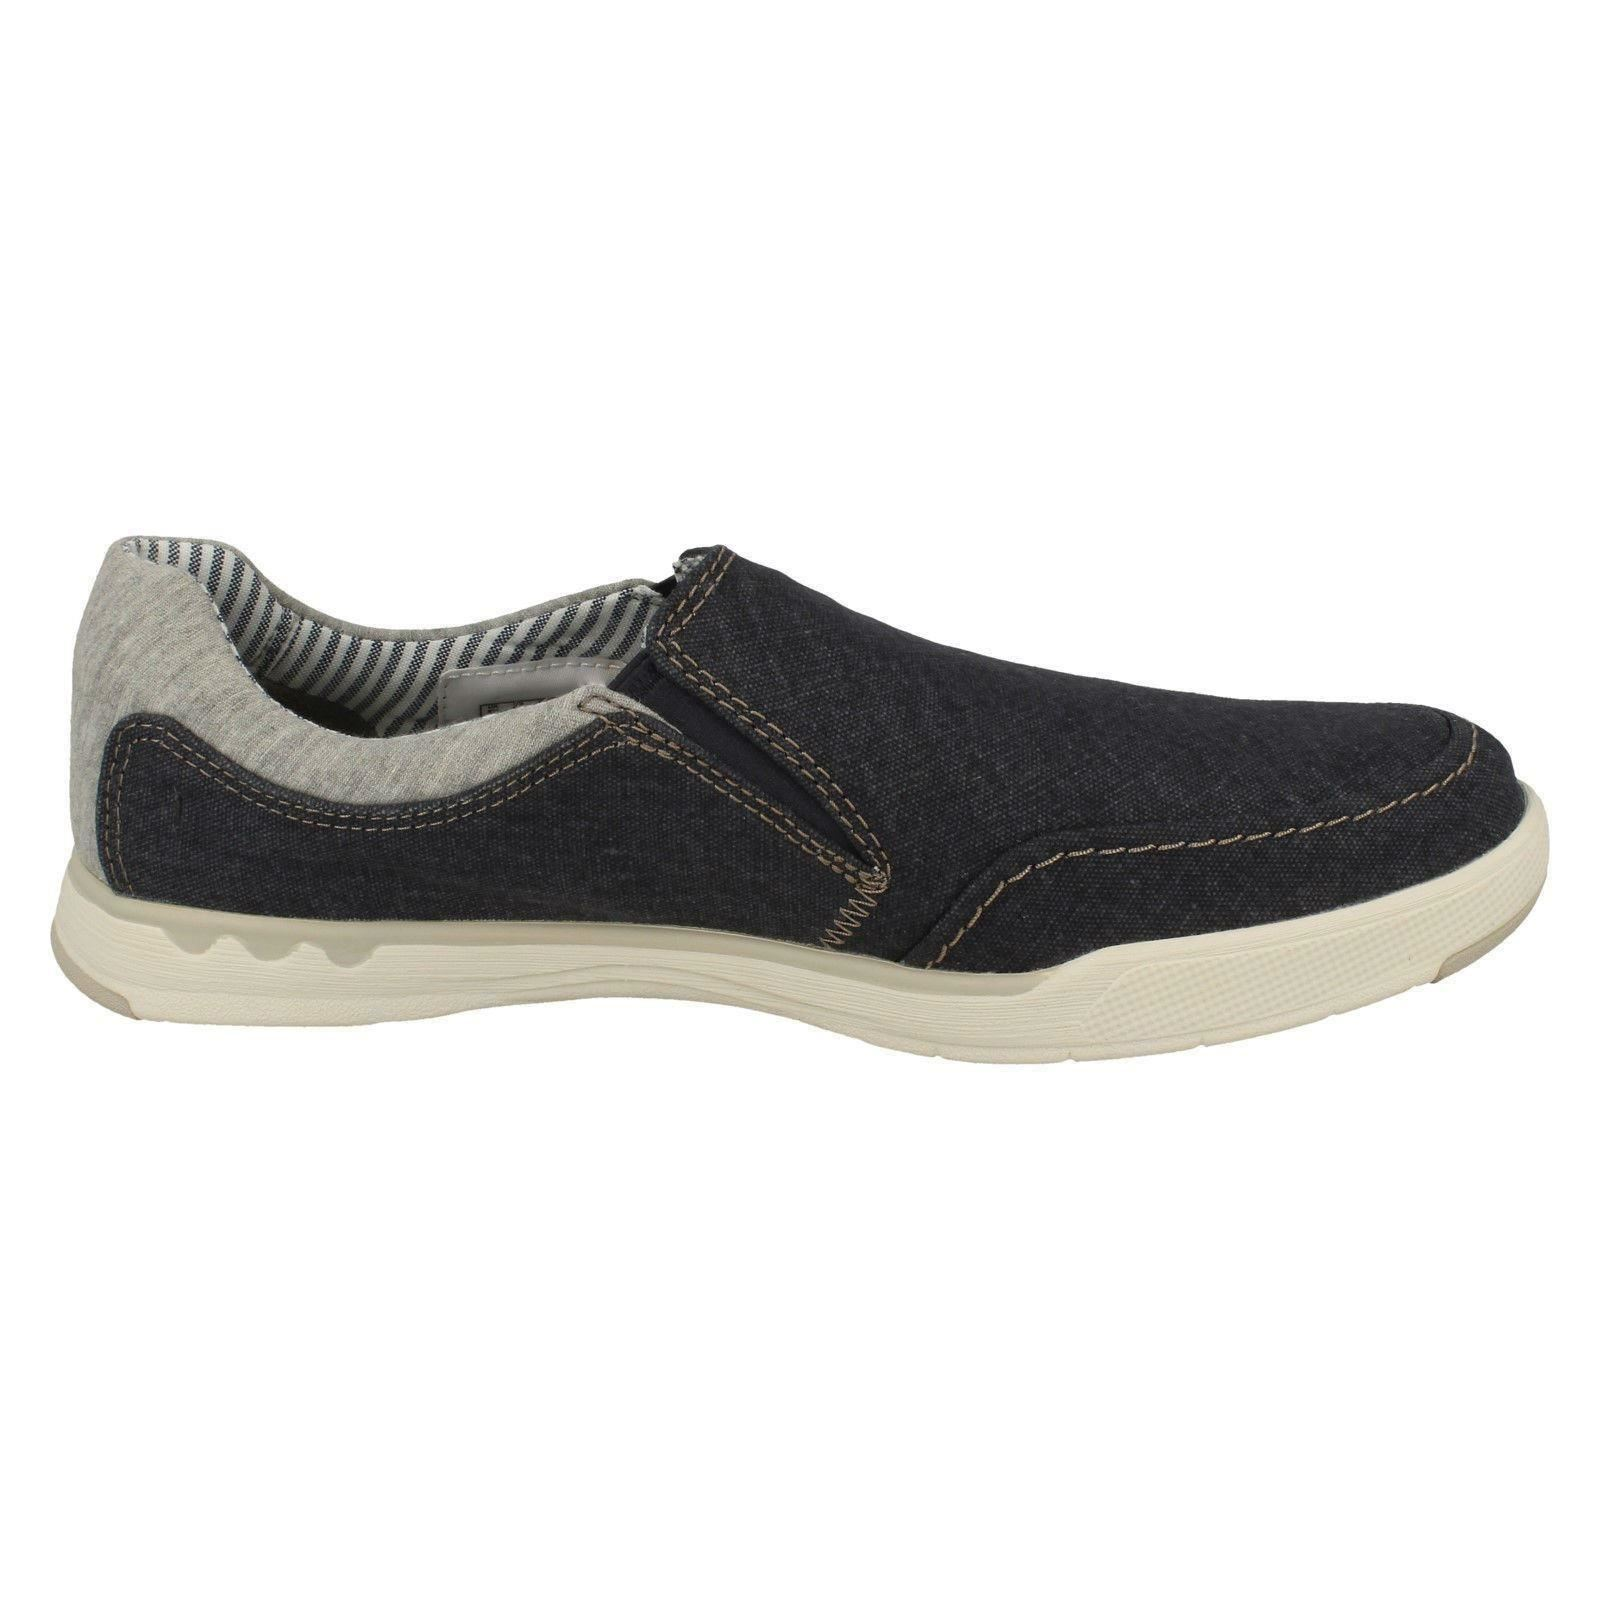 Uomo Clarks Cloudsteppers Casual Slip On Canvas Slip Schuhes - Step Isle Slip Canvas 8c413a